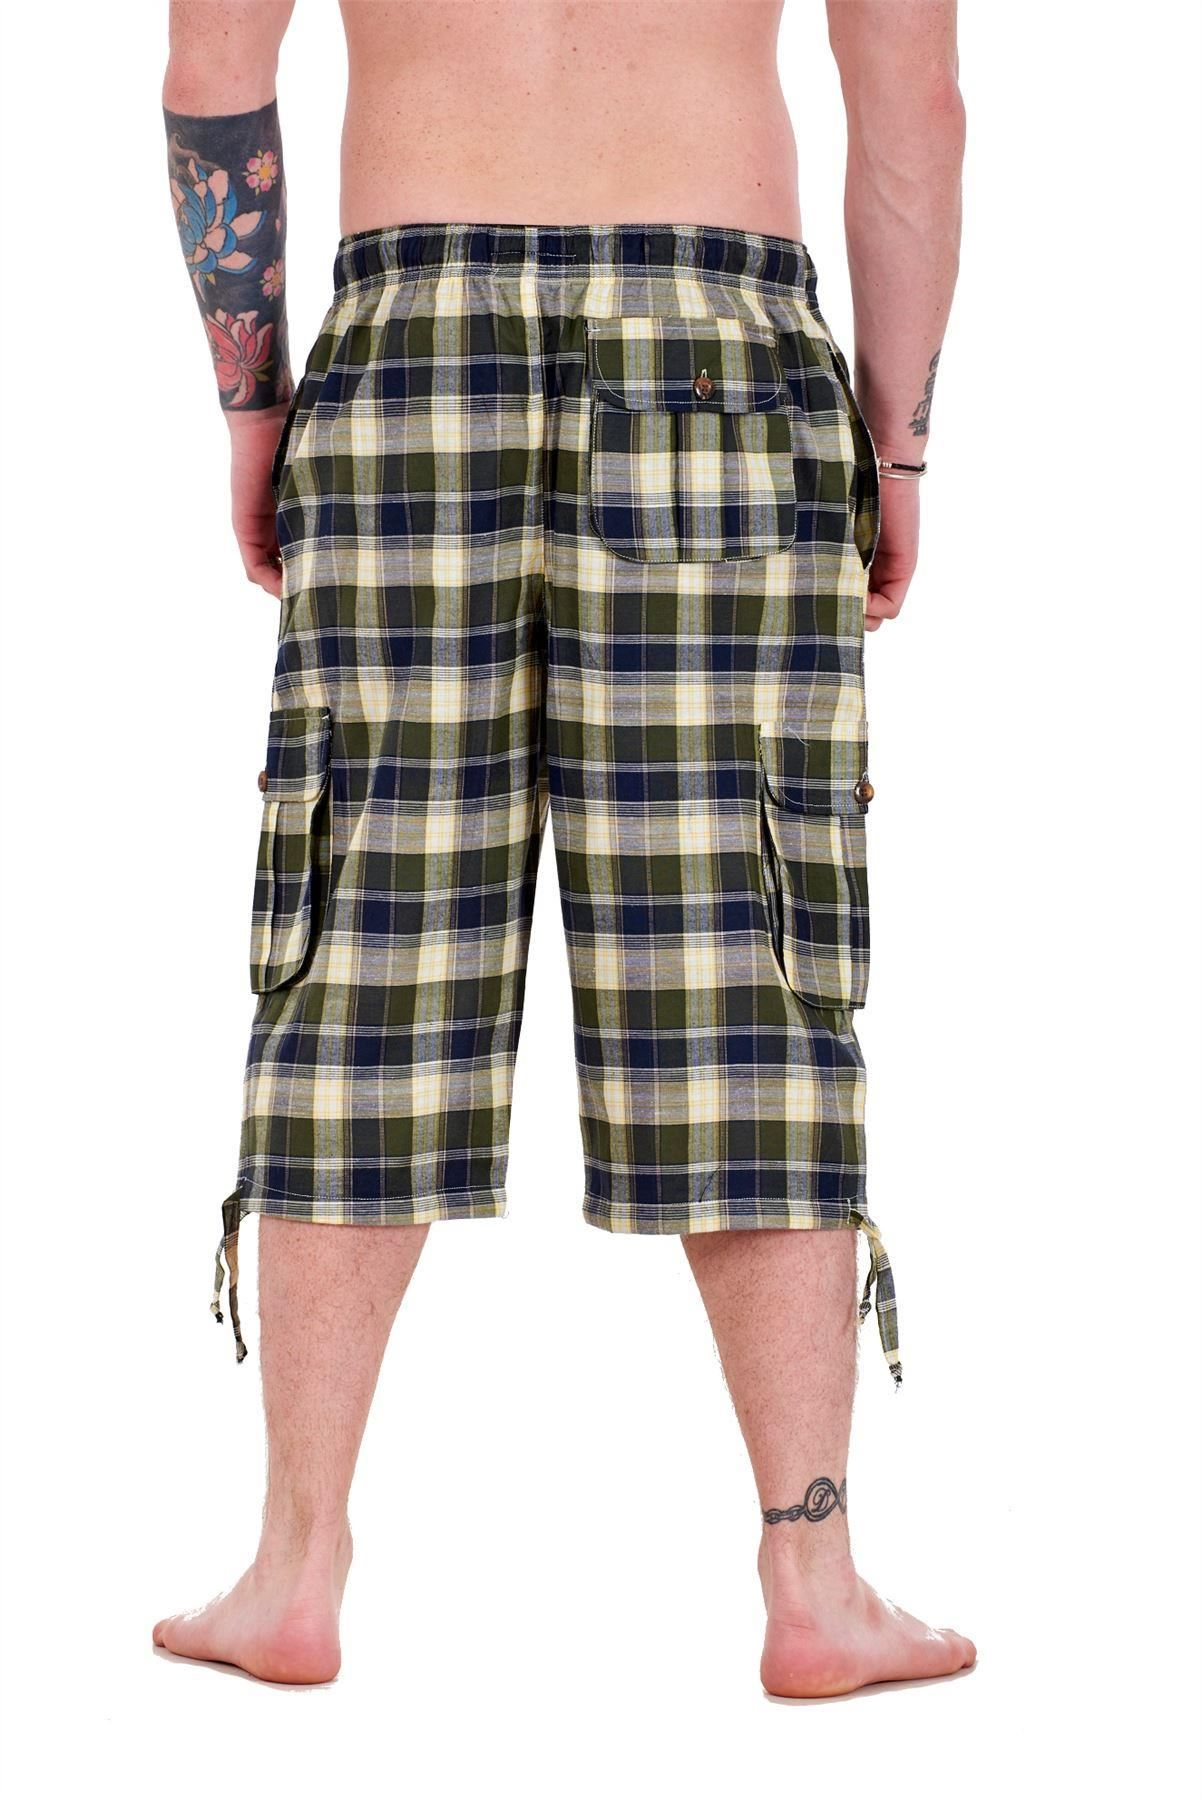 Mens-Check-Shorts-3-4-Length-by-Malay-Apparel-Cotton-Blend-Lounge-Casual-Wear thumbnail 29